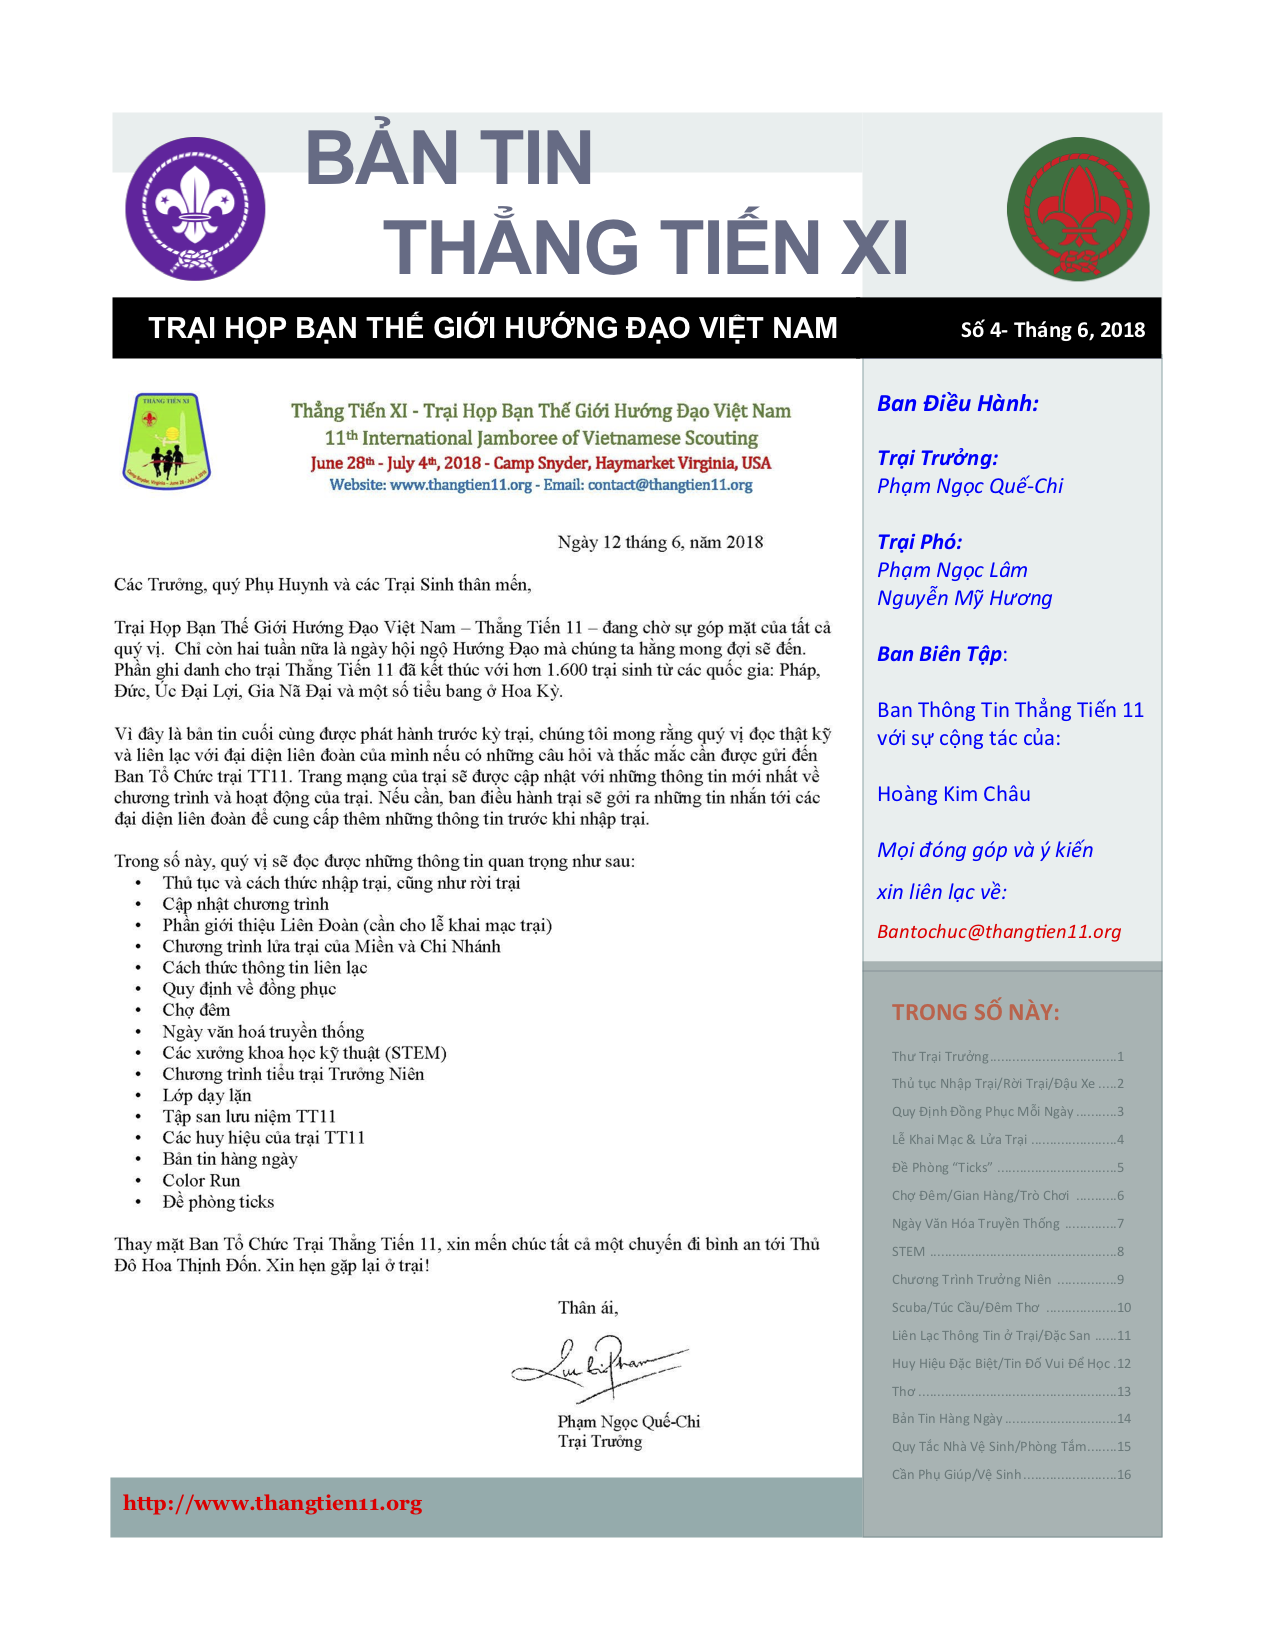 Thumbnail for TT11 Newsletter #4 Viet